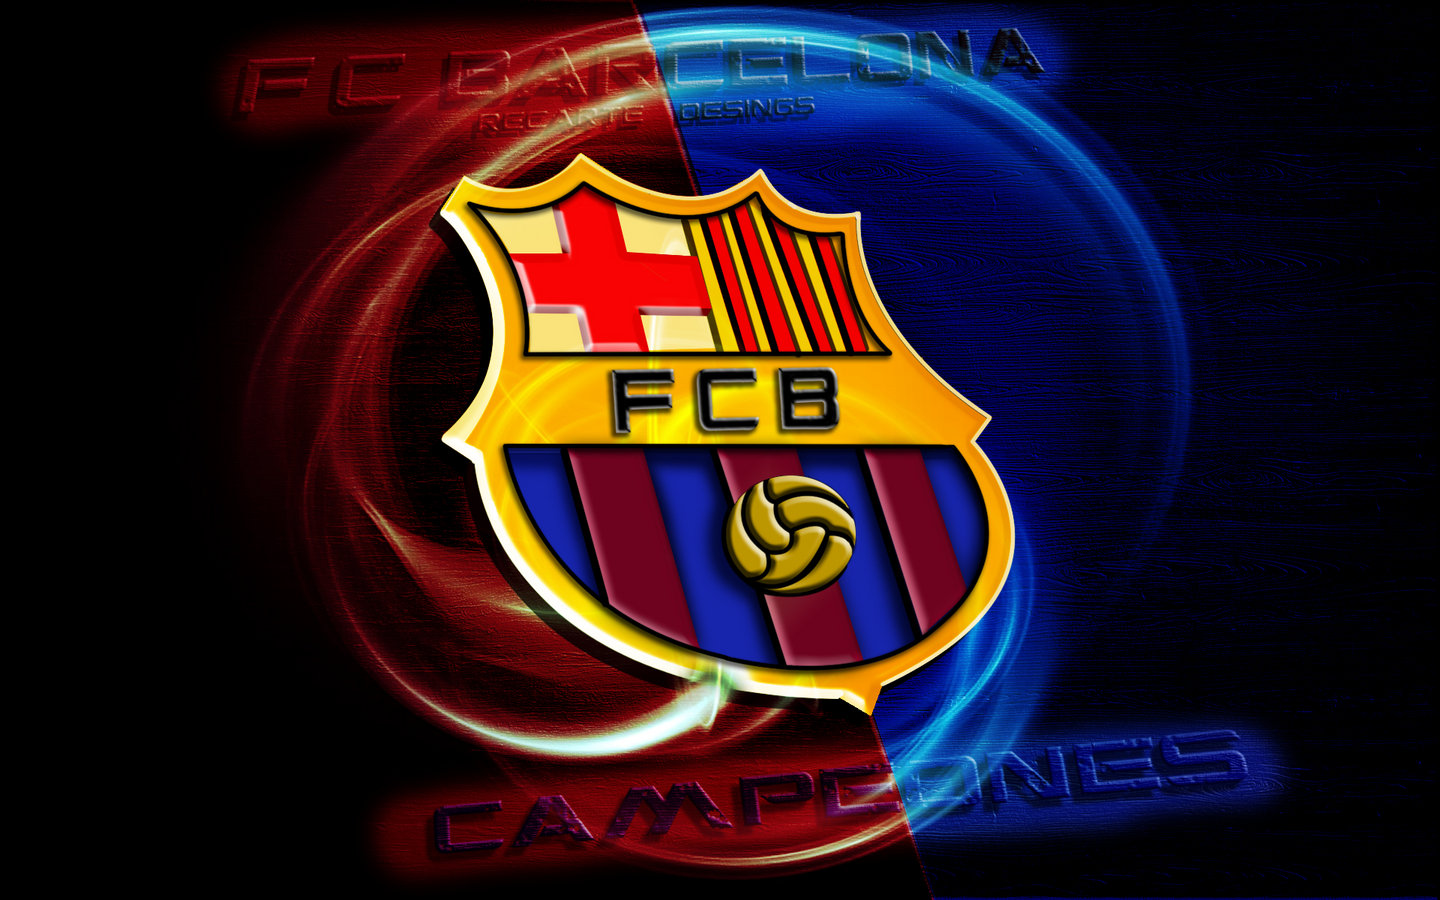 http://2.bp.blogspot.com/-H3SLfDozgrA/TwnWDGocJ3I/AAAAAAAAEpg/NjvTX-0TDLg/s1600/Beautiful+Fc+Barcelona+Logo+2012+Wallpaper+HD+On+1440x900+Widescreen+1.jpg